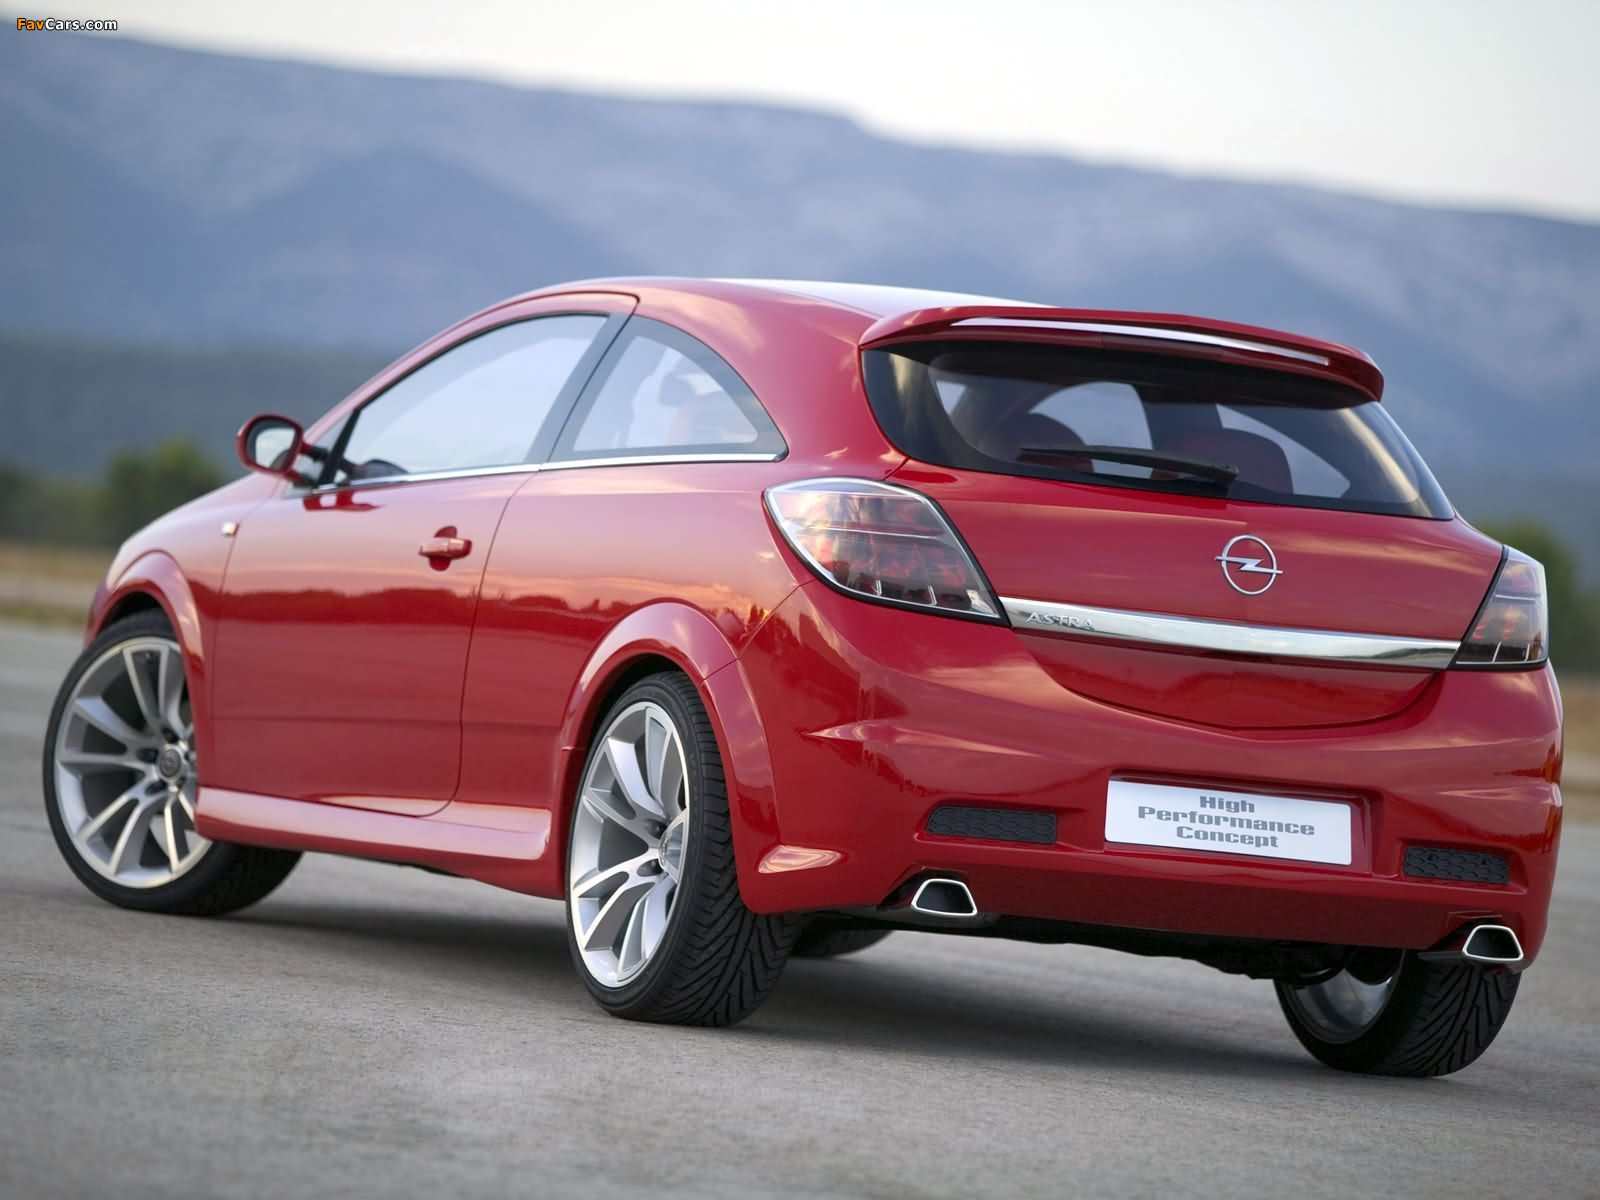 Opel Astra GTC High Performance Concept (H) 2004 pictures (1600 x 1200)